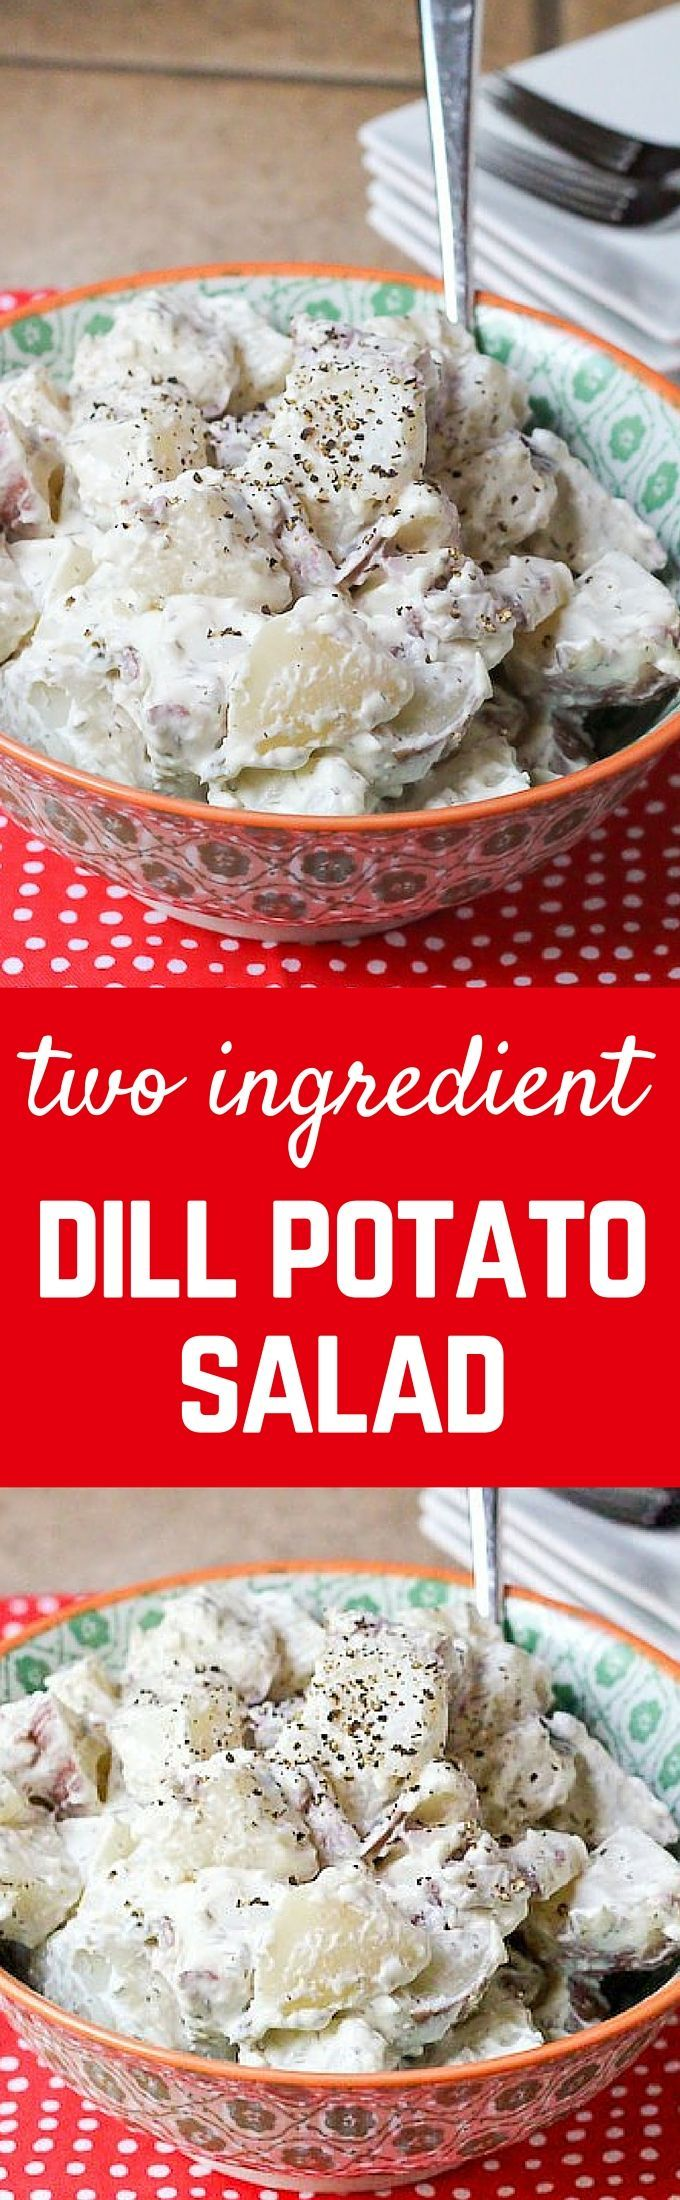 With this TWO INGREDIENT dill potato salad, summer picnicking just got a whole lot easier. Get the easy recipe on http://RachelCooks.com!